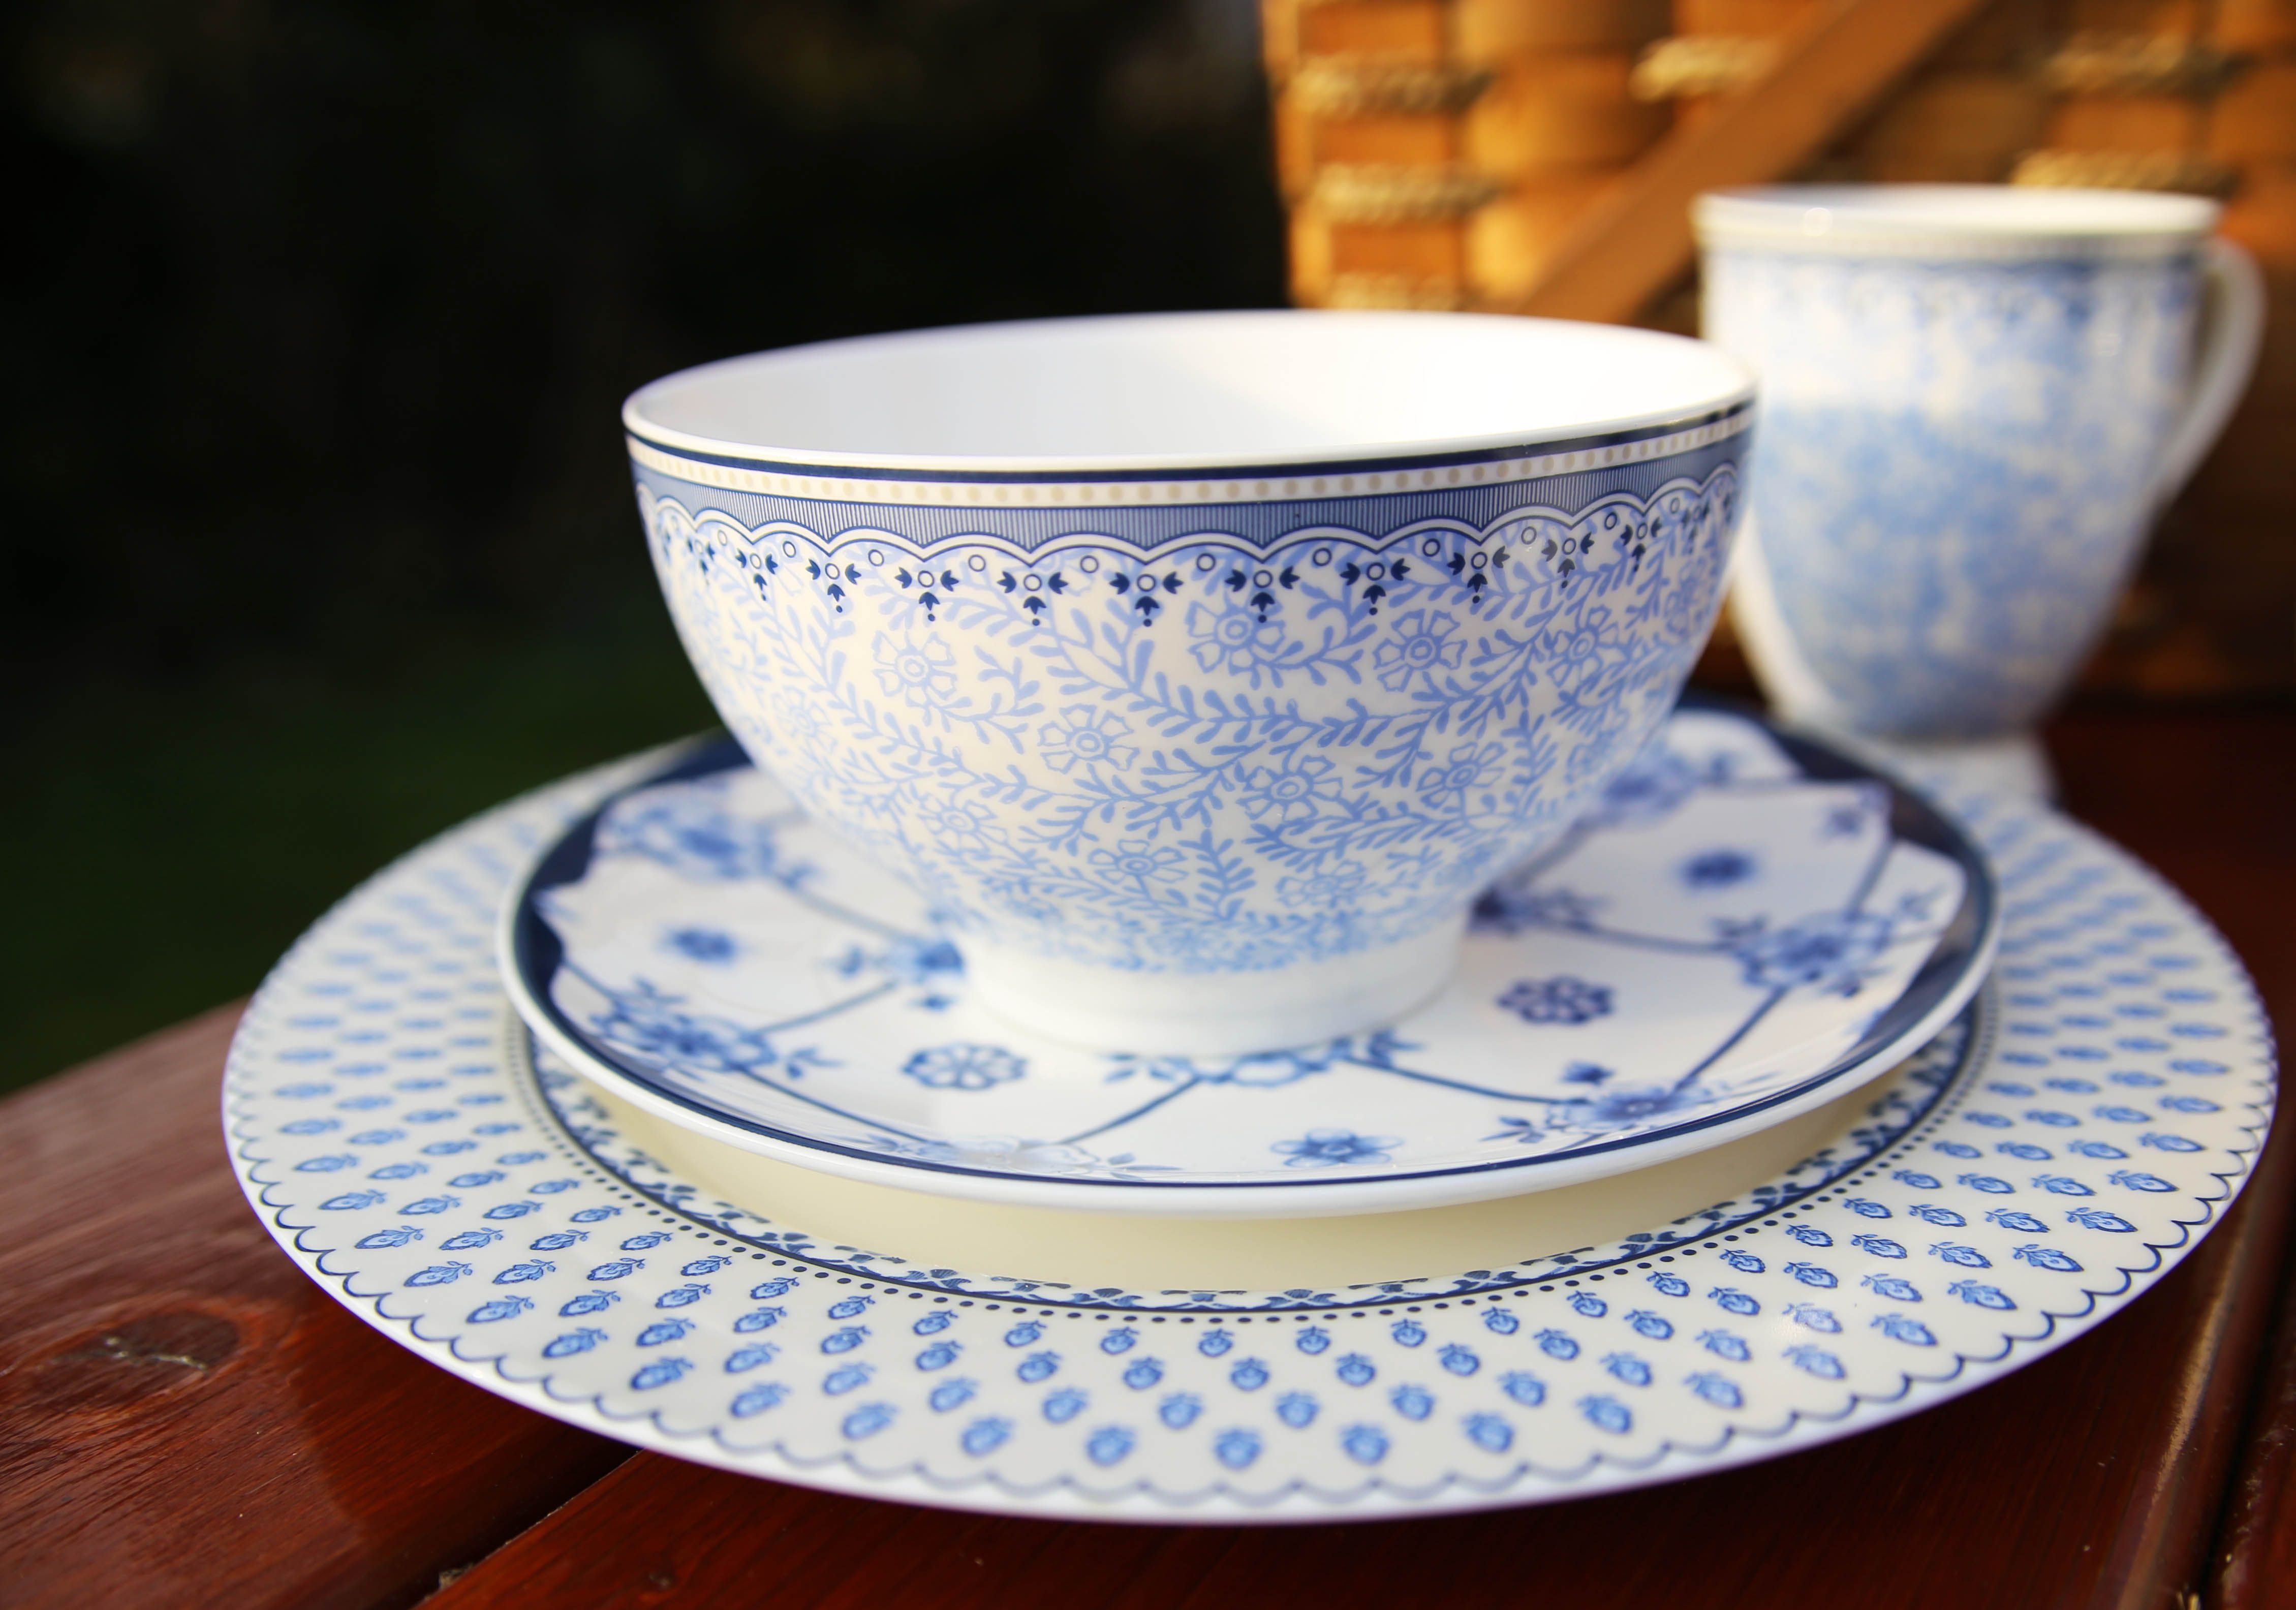 Carraig Donn Delphi Lake House Dining Collection available in stores \u0026 online from as little as & Carraig Donn Delphi Lake House Dining Collection available in stores ...